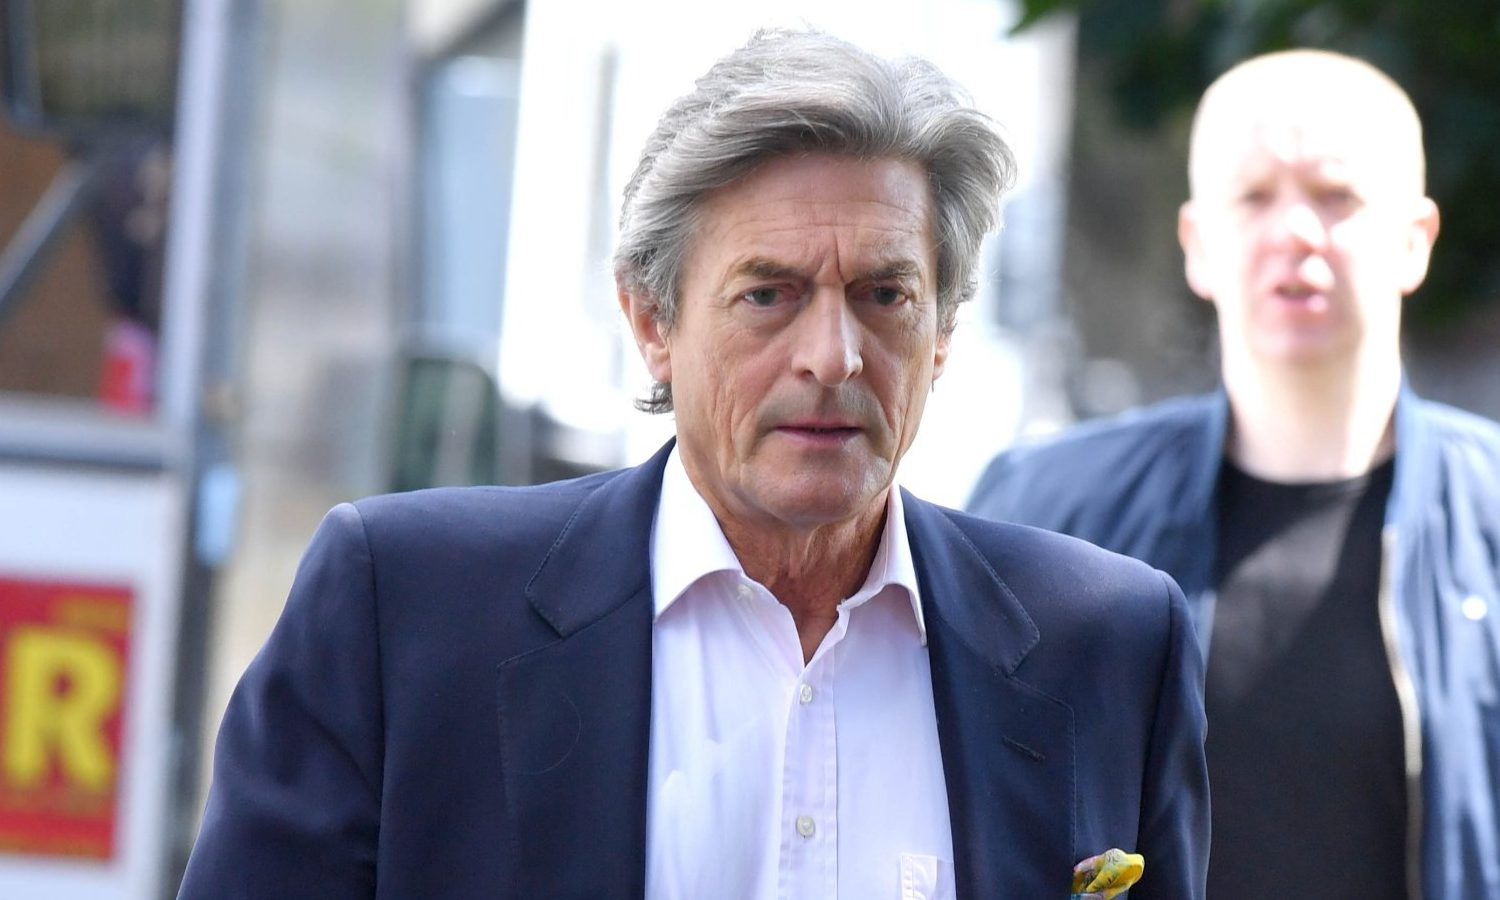 Pics Paul Cousans/Zenpix Ltd Corrie.. Cad Lewis(Nigel Havers) looks like he is back on the scene trying to woo Audrey(Sue Nicholl) .Audrey let Lewis go free when he as involved in a tussle with Roy Cropper. Audrey was heard saying 'he overpowered me'when daughter Gail returned to the car that Lewis was 'handcuffed' to. It seems that Audrey was not too keen to be seen though as she arrived on location shrouded in a headscarf. May be she is too embarrassed to be seen with suave Lewis